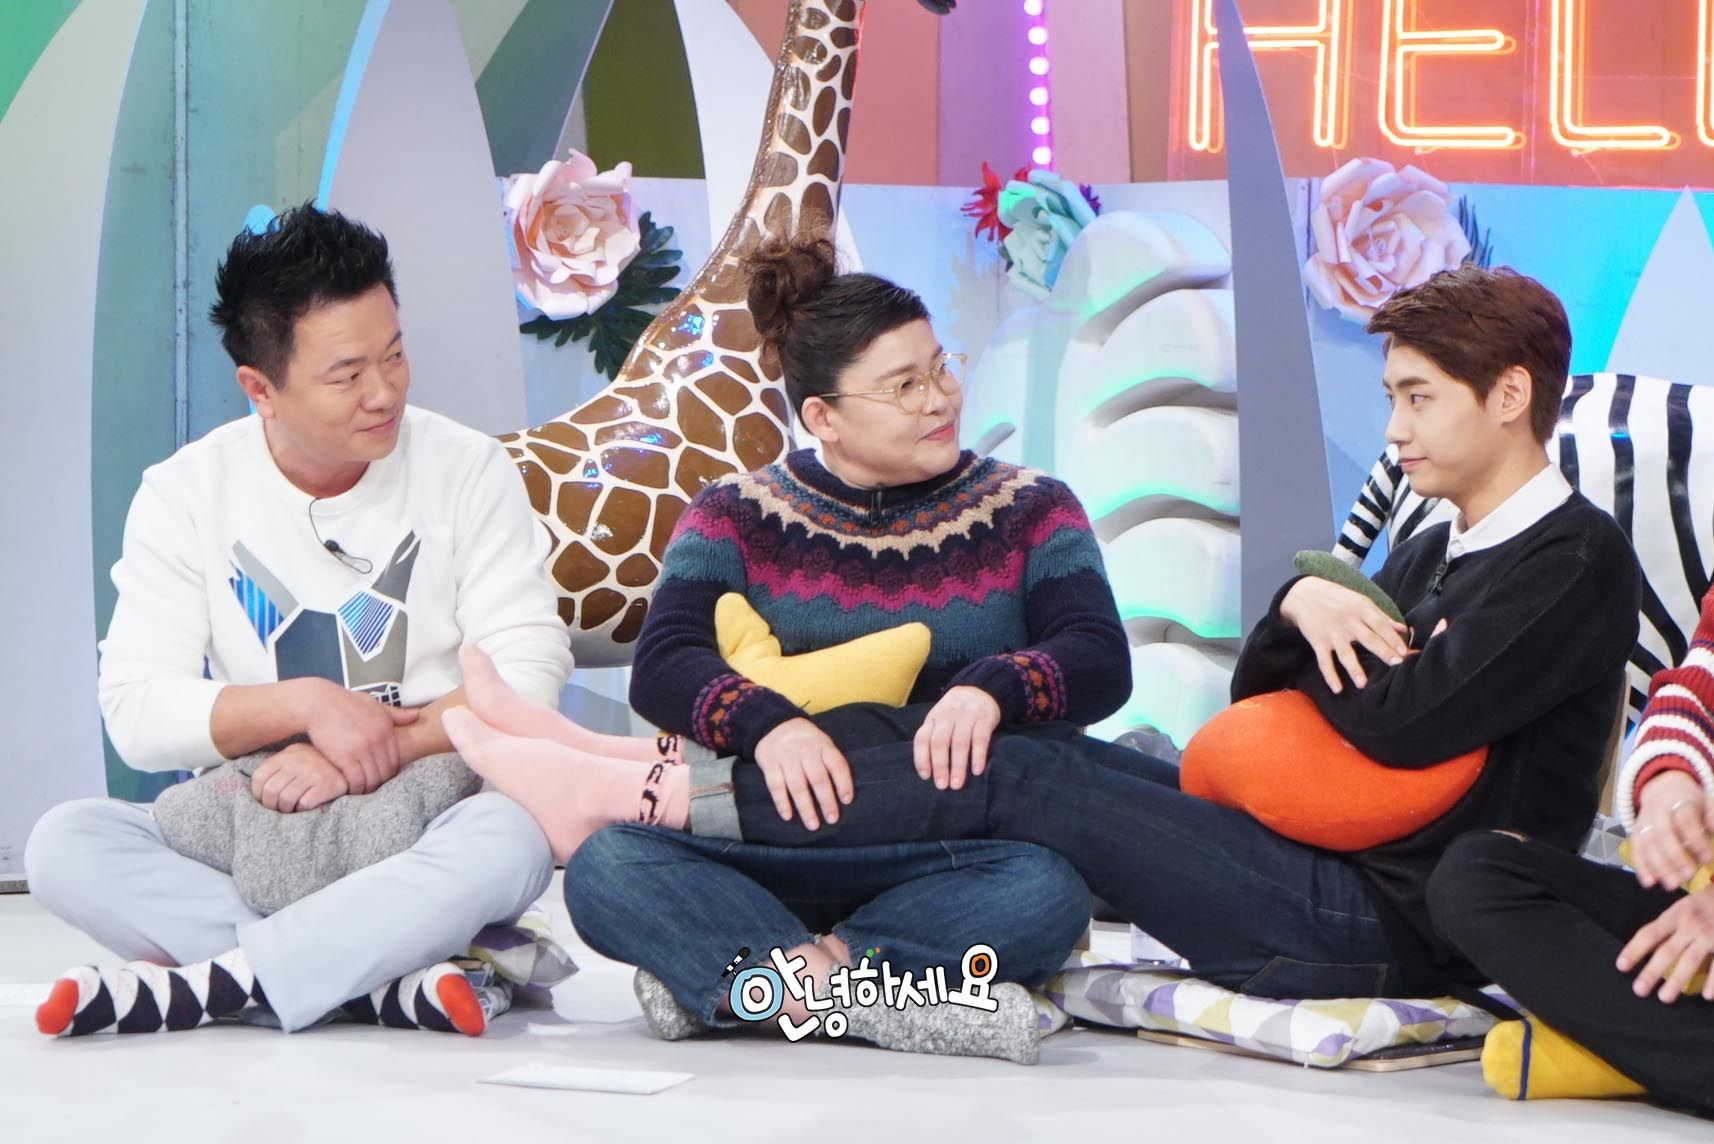 UP10TION WEI - Behind the scenes of 'Hello Counselor'  #UP10TION #업텐션    #웨이 #WEI